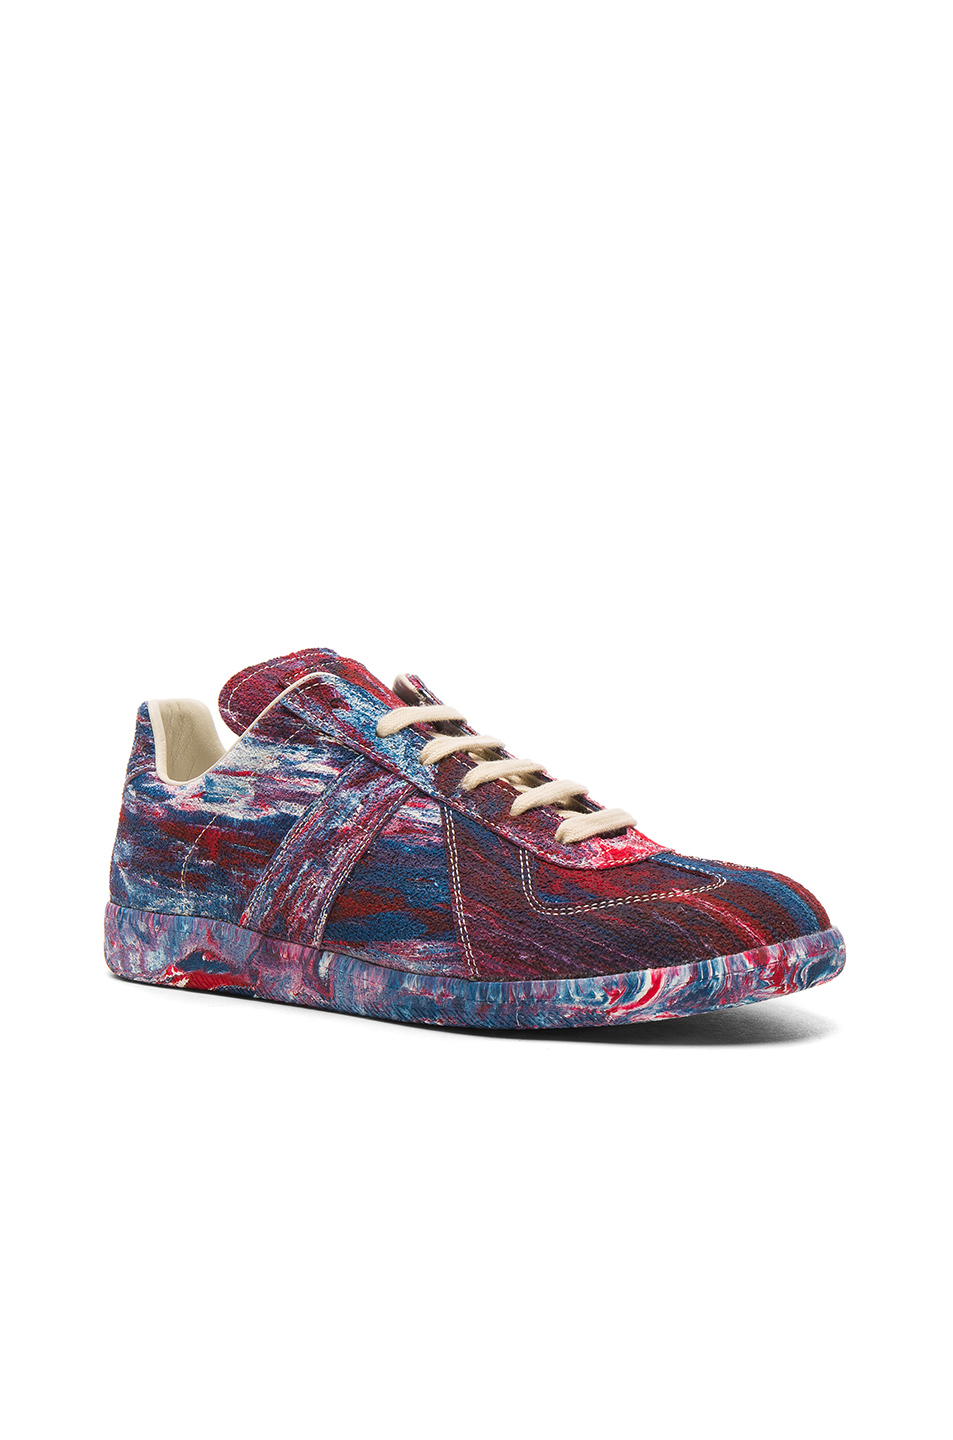 Maison Margiela Replica Rubber Sneakers in Ombre & Tie Dye,Red,Blue